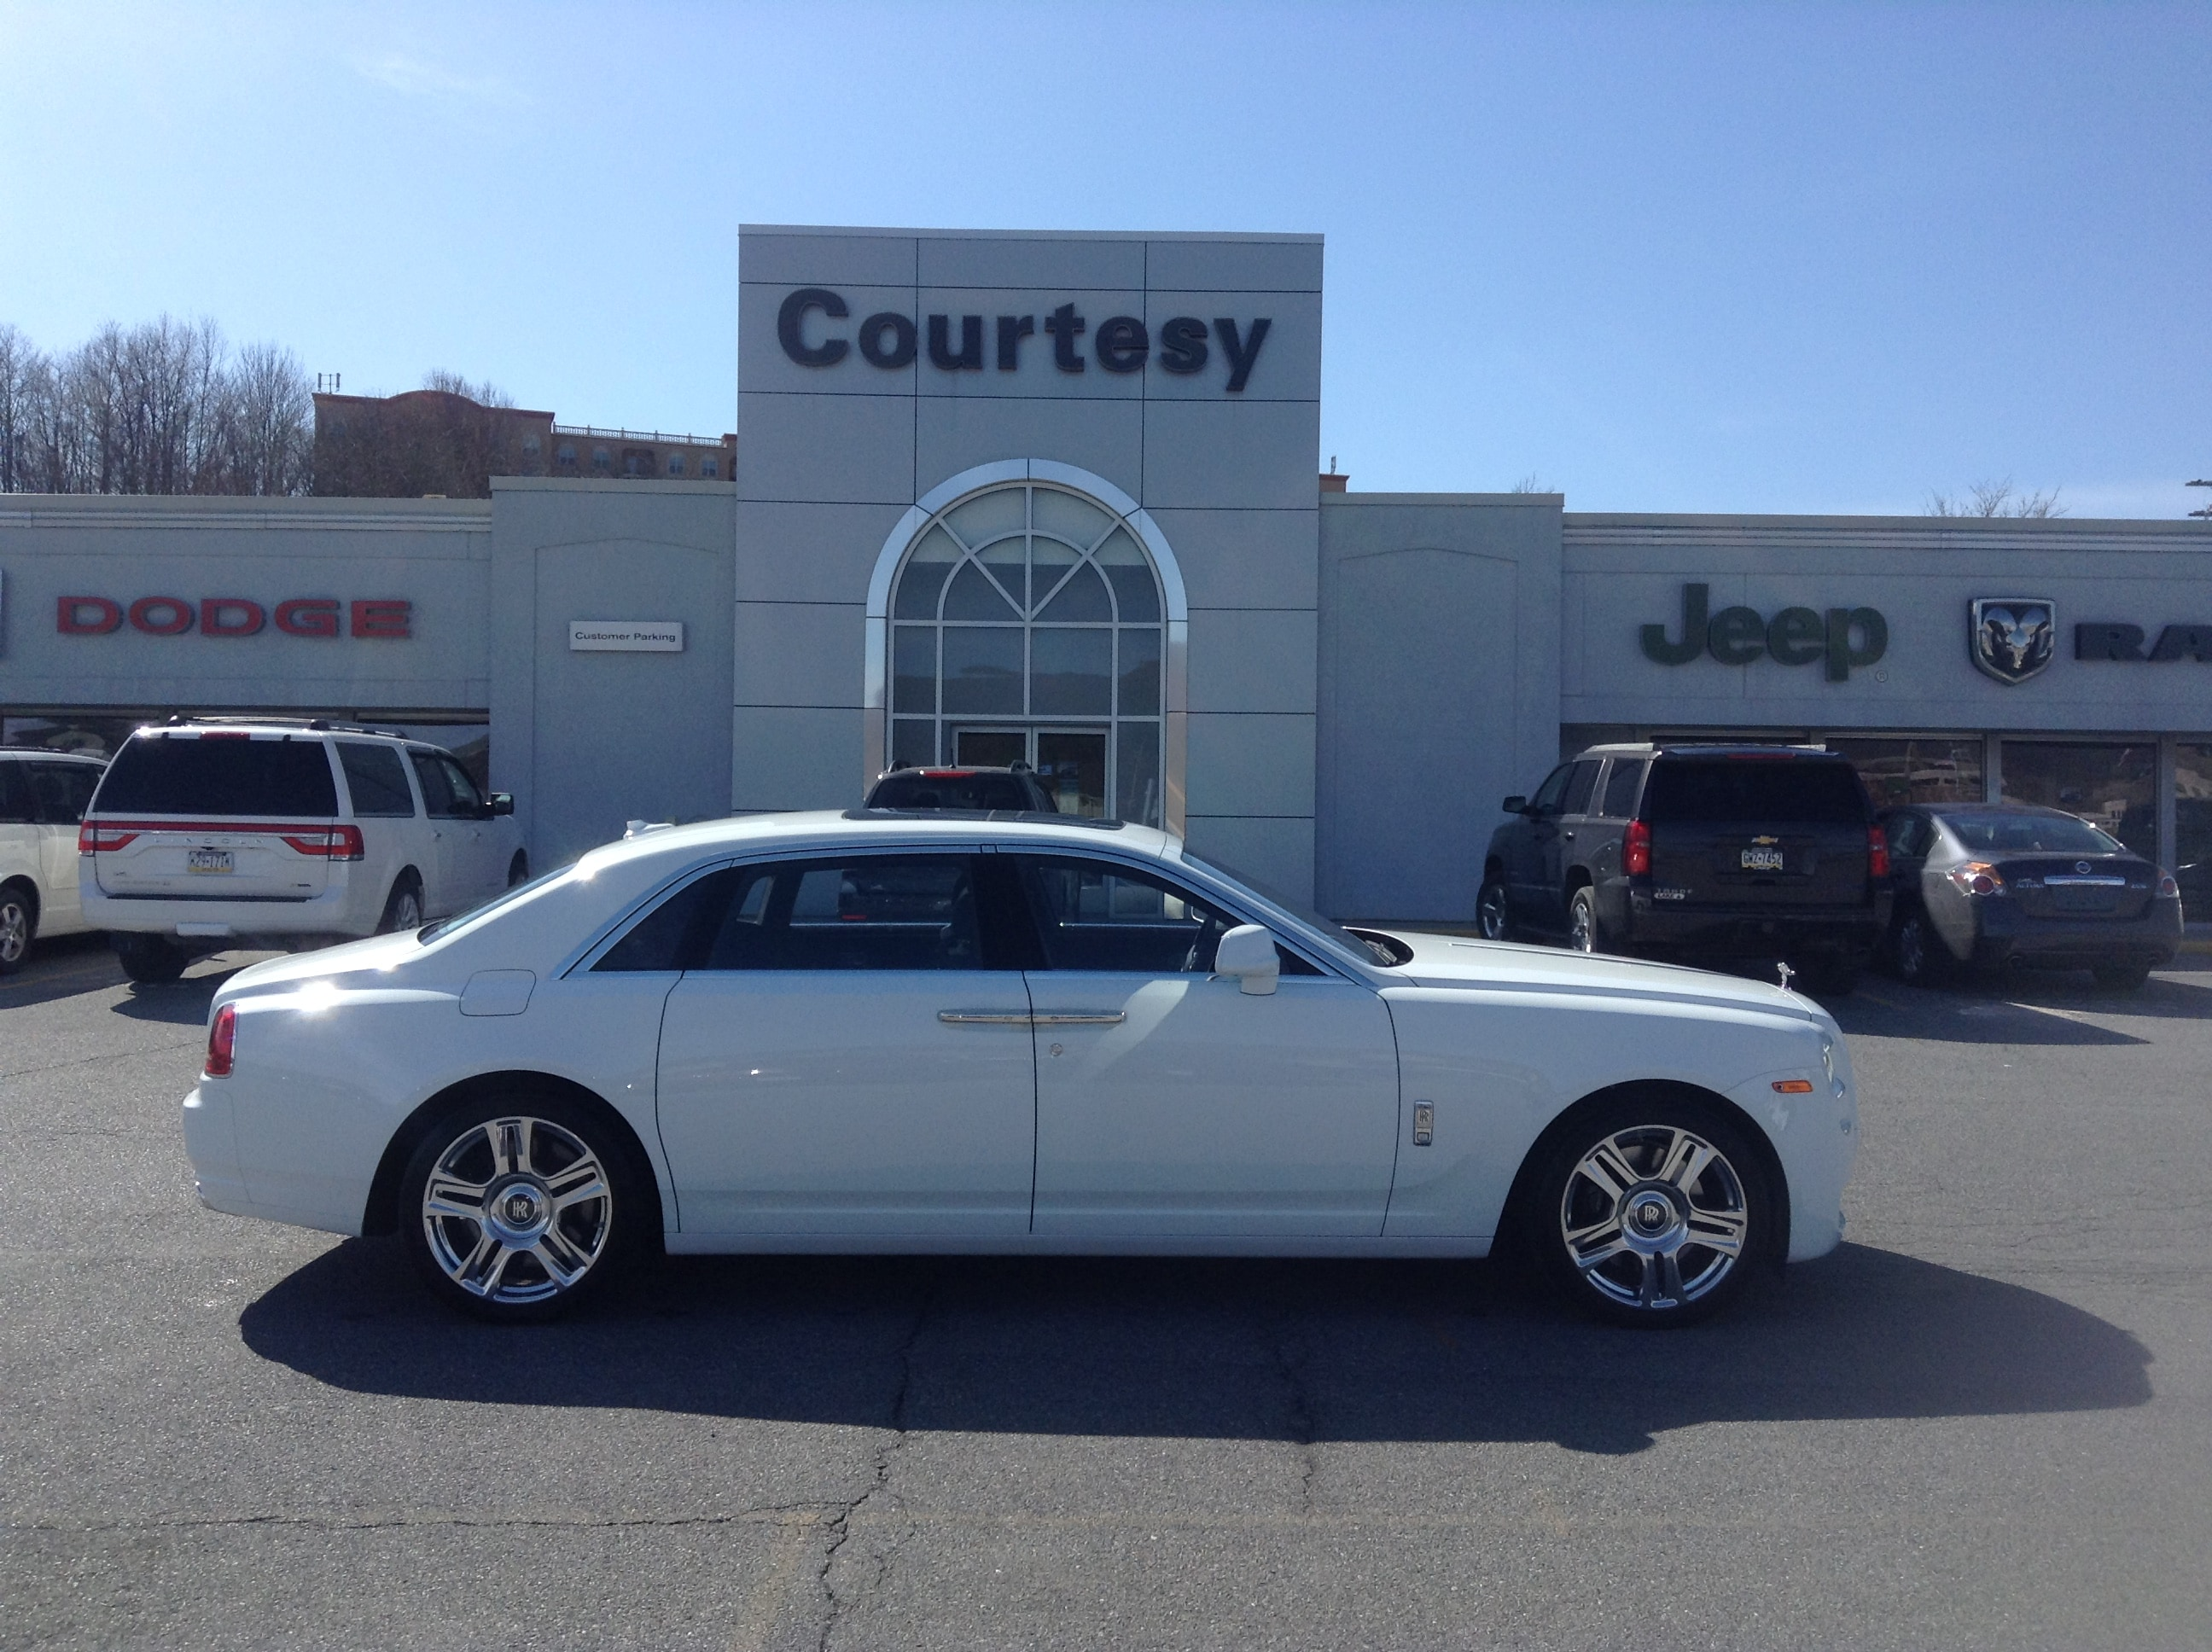 Used 2015 Rolls Royce Ghost Ext Sdn Rf For Sale At Courtesy Kia Vin Sca664l57fux66422